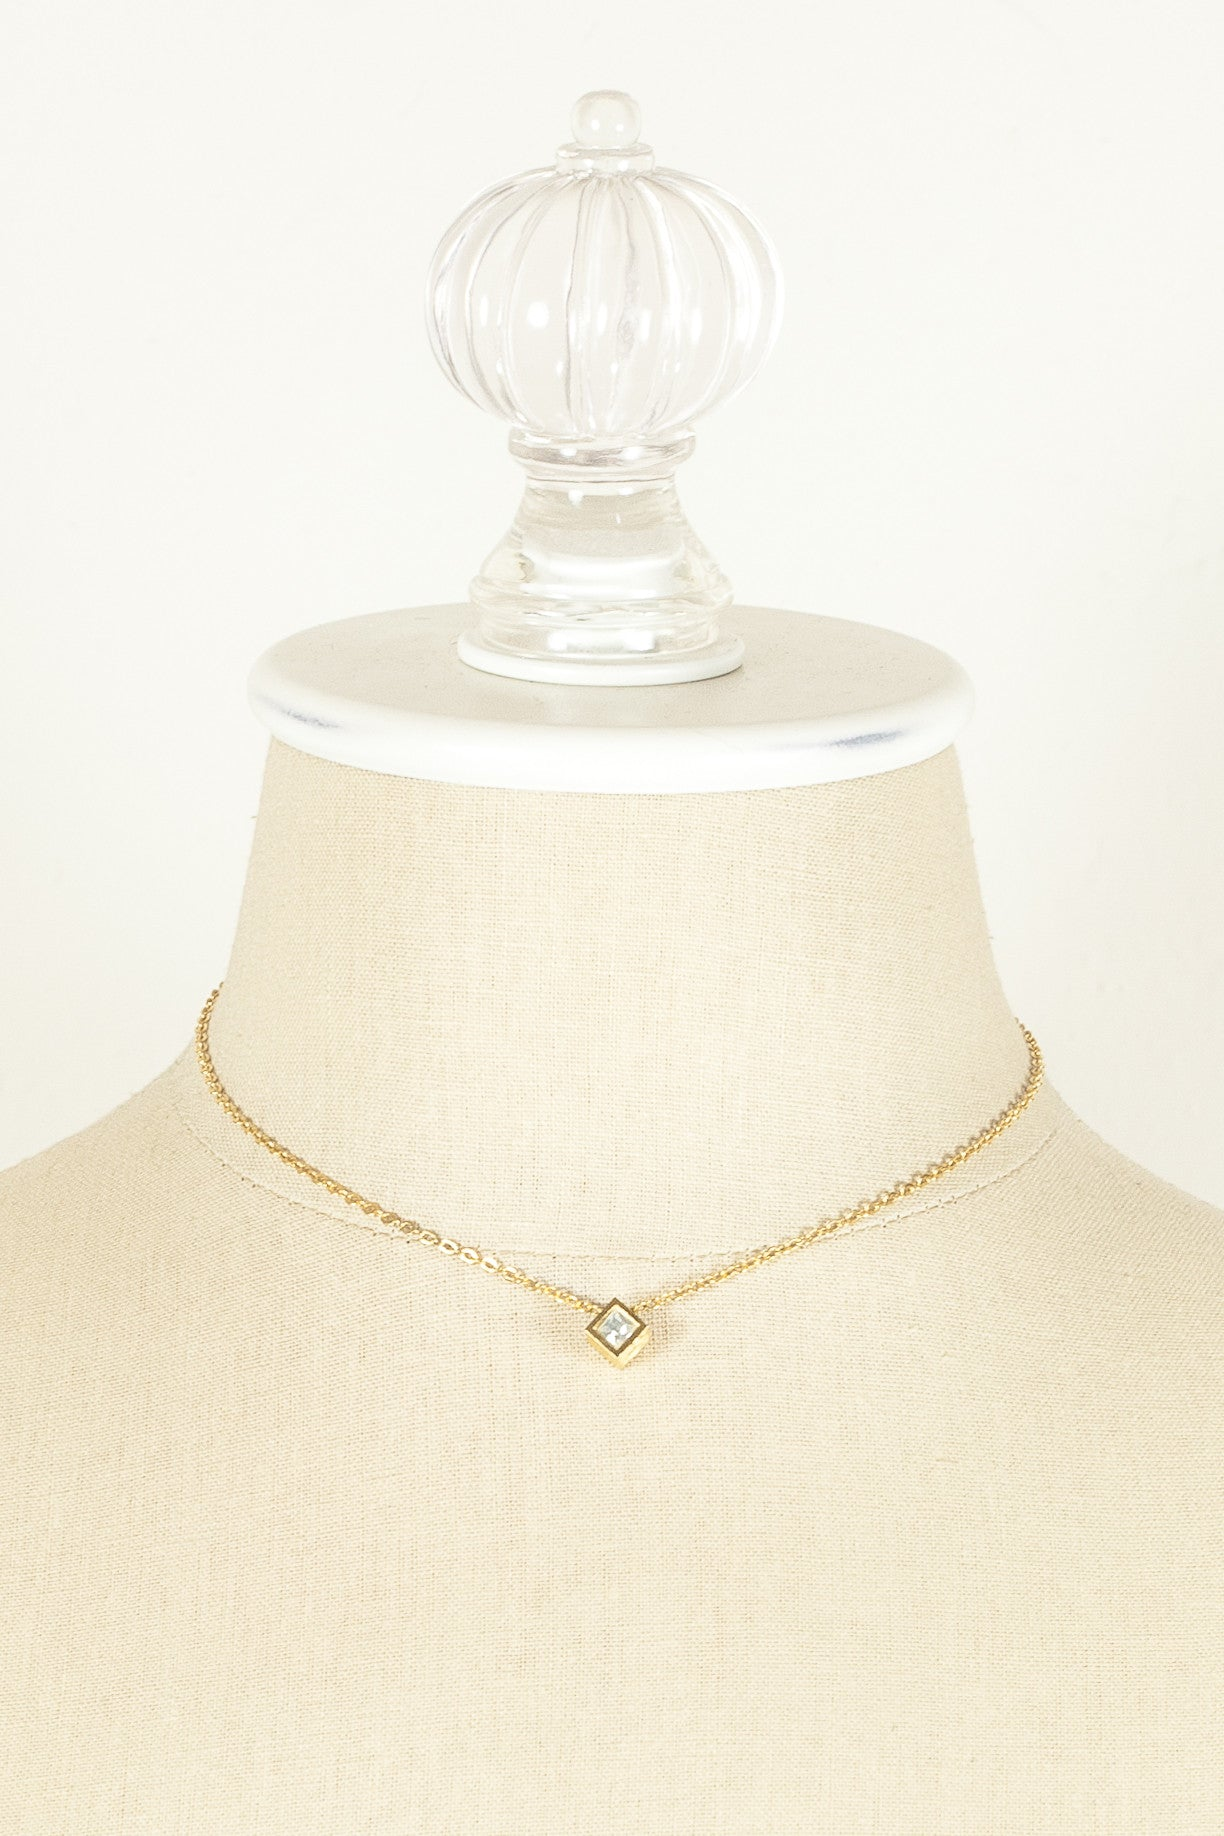 70's__Trifari__Dainty Diamond Charm Necklace